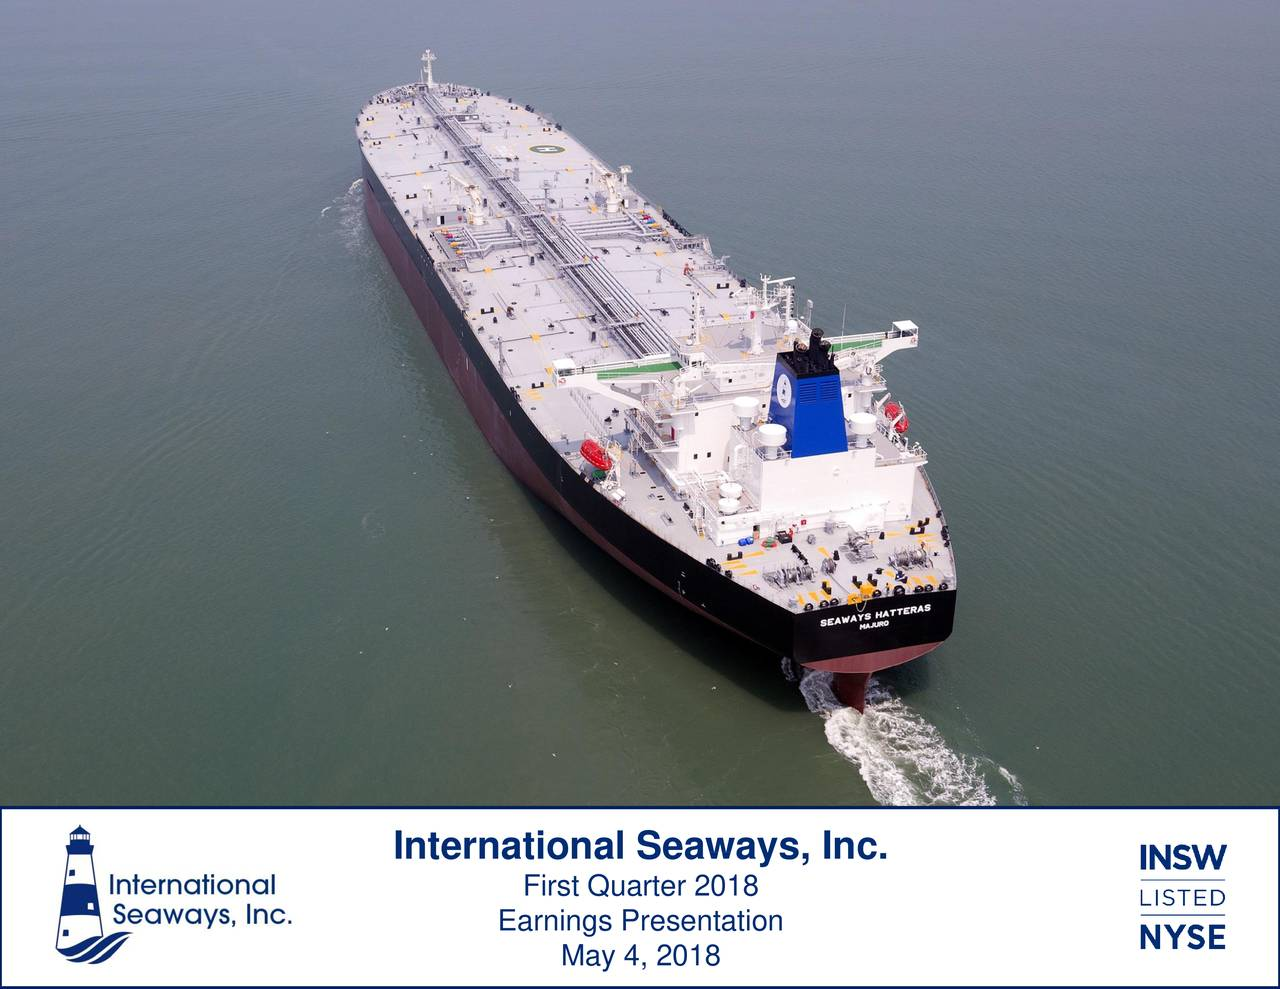 International Seaways, Inc. First Quarter 2018 Earnings Presentation International Seaways, Inc. May 4, 2018